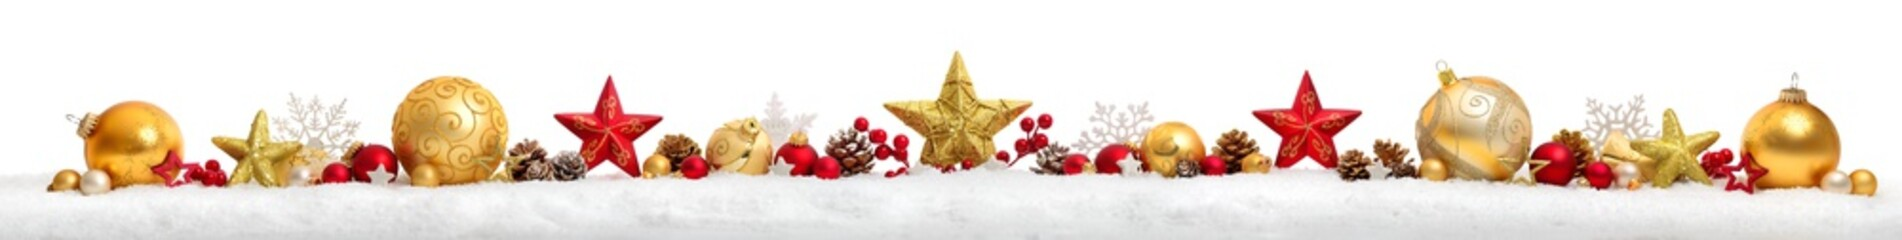 Christmas border or banner with stars and baubles, white background